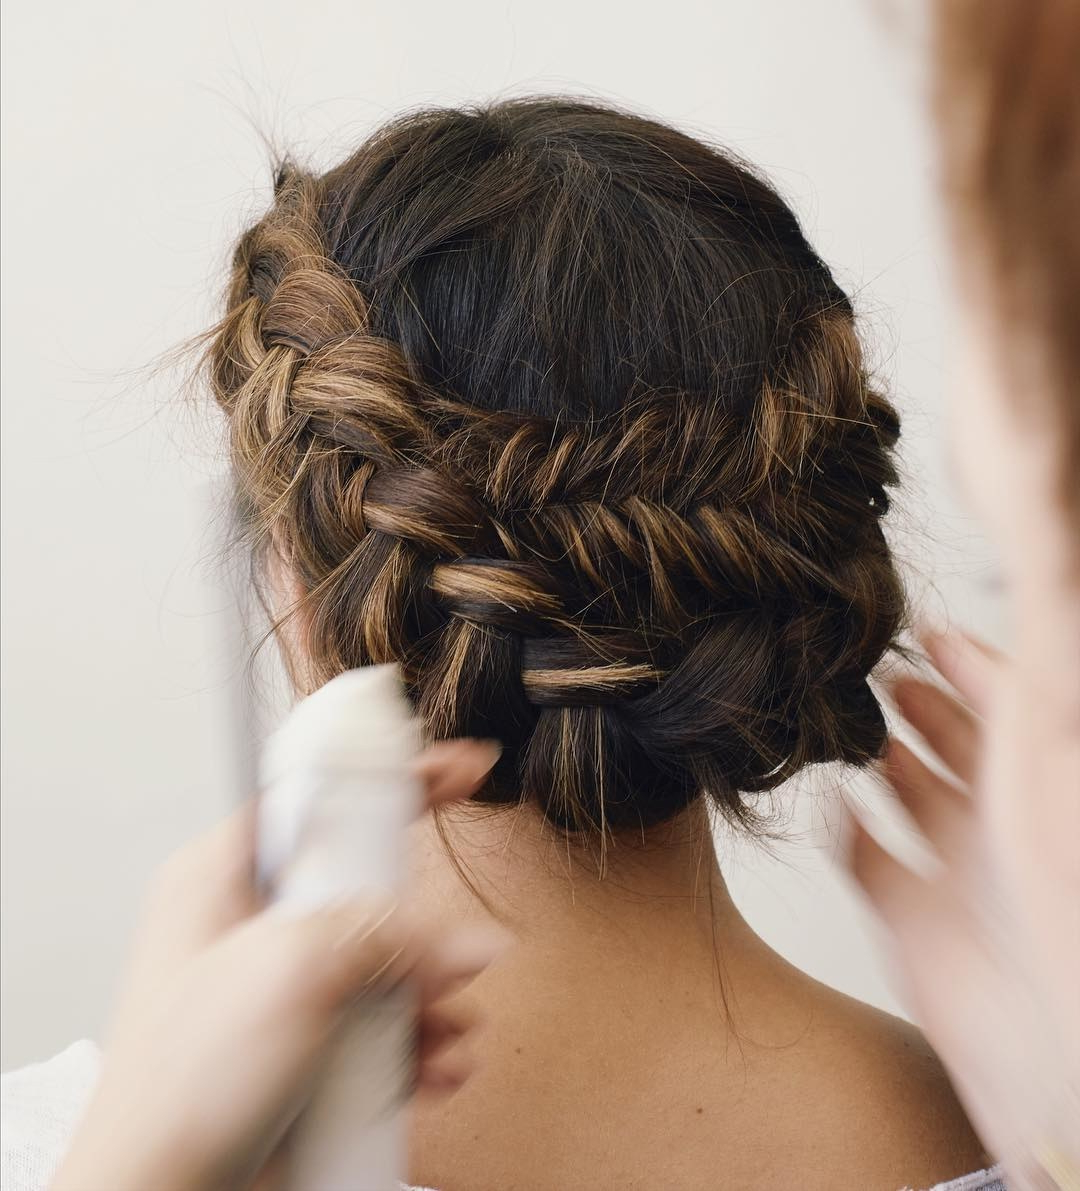 Current Curly Messy Updo Wedding Hairstyles For Fine Hair With 61 Braided Wedding Hairstyles (View 10 of 20)